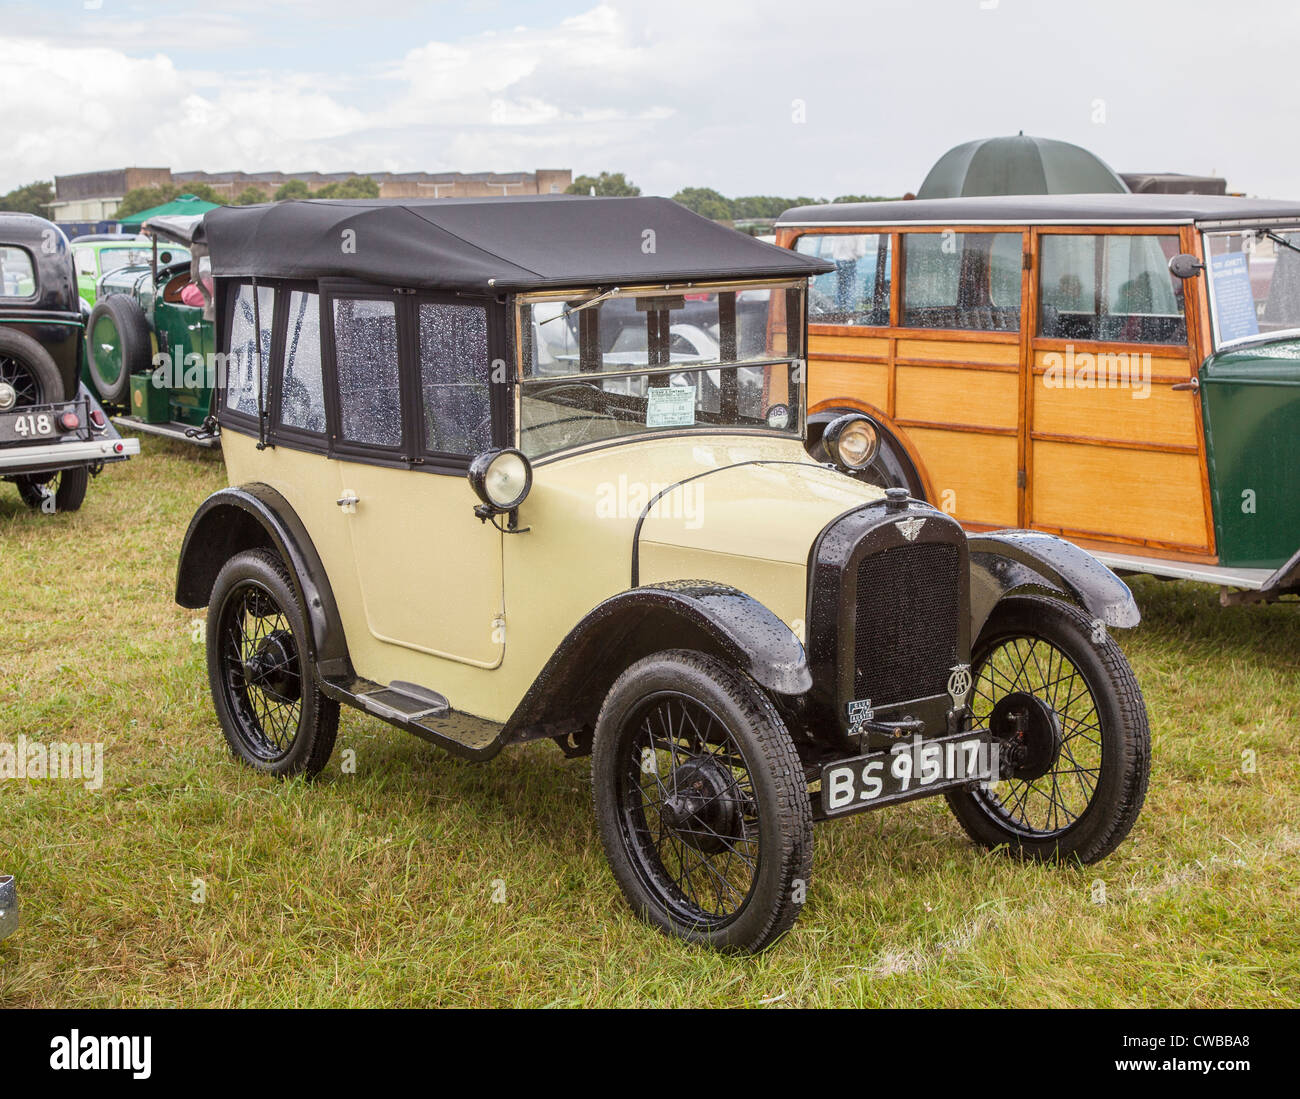 Vintage Austin car at a rally at South Cerney Airfield, Cirencester, Cotswolds, England, UK - Stock Image